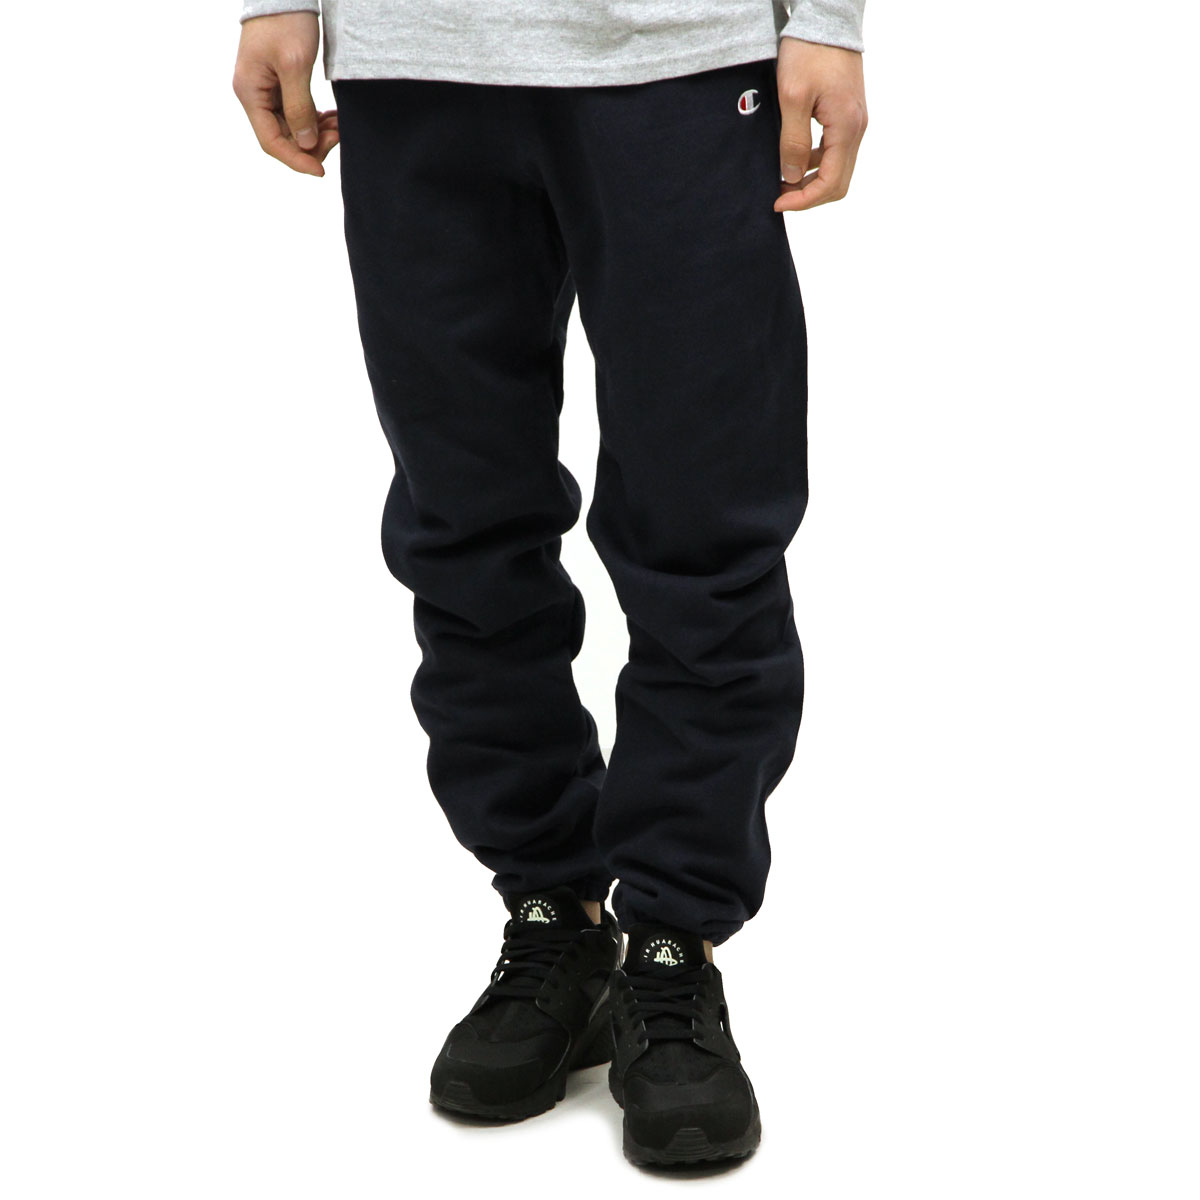 チャンピオン CHAMPION 正規品 メンズ ハーフパンツ SWEAT HALF PANTS P4971 Reverse Weave Pant w/ pockets 031-NAVY